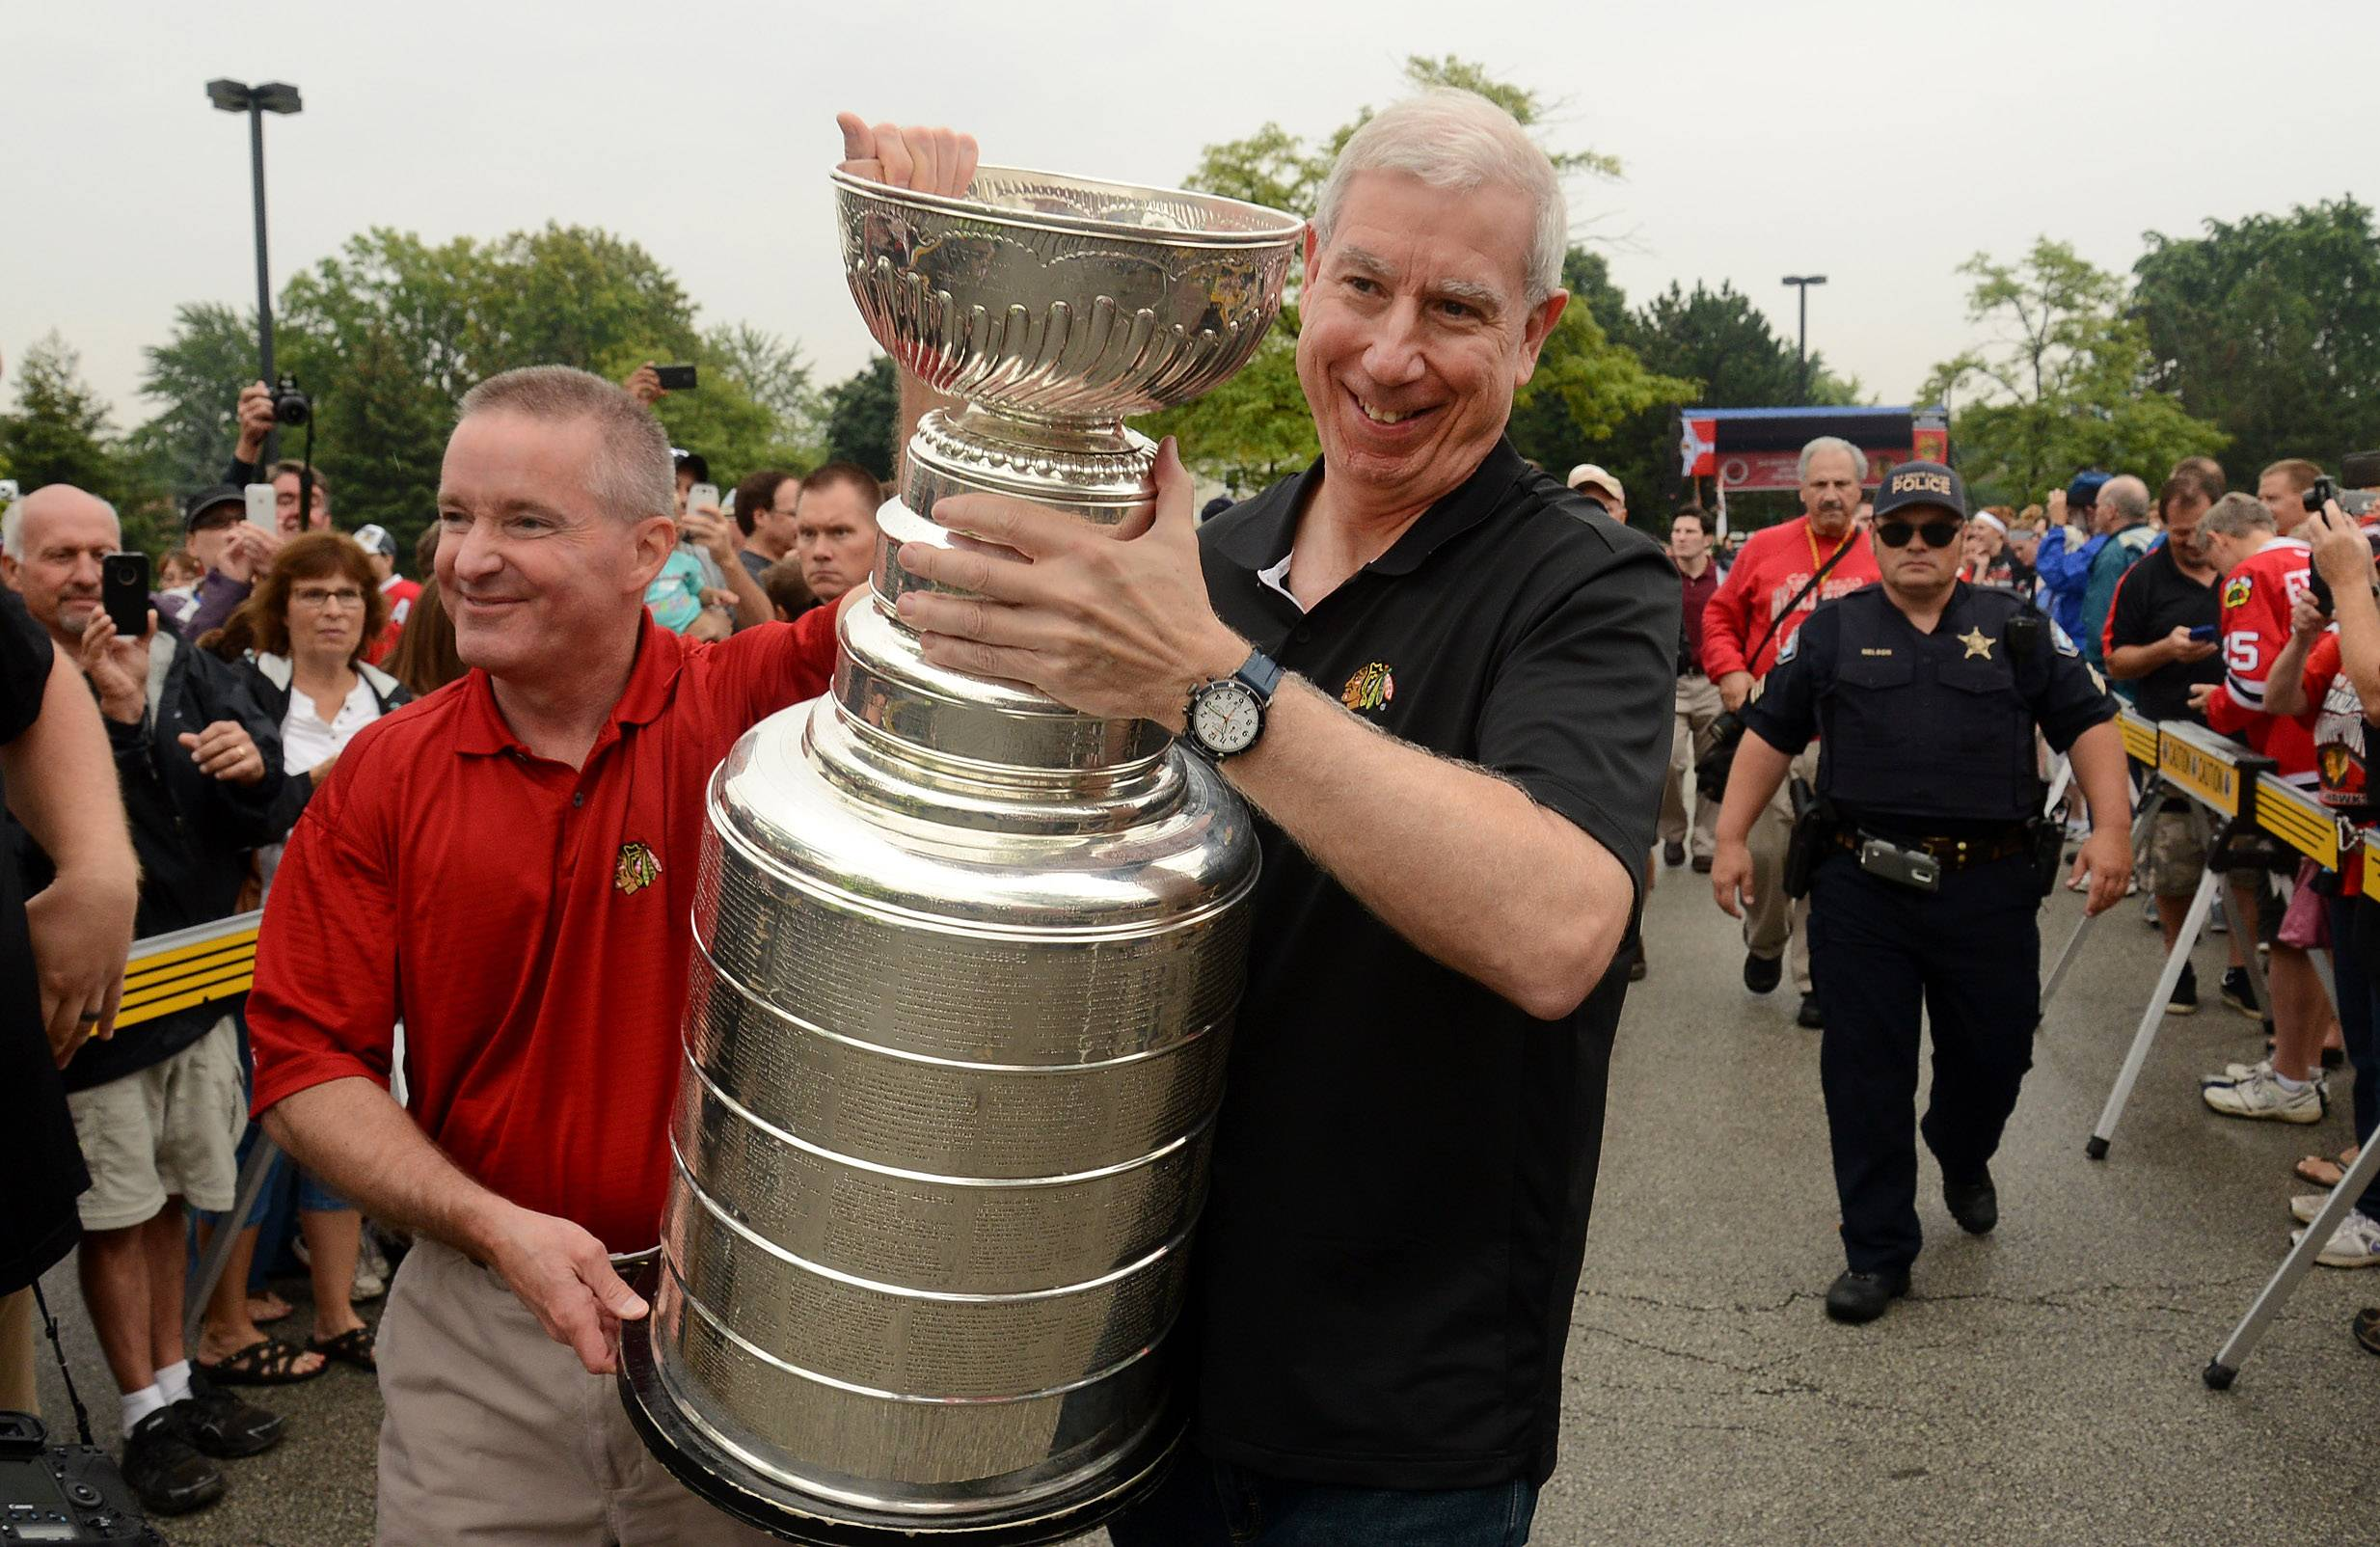 Blackhawks team president and CEO John McDonough and Elk Grove Village Mayor Craig Johnson parade the Stanley Cup at a public rally in Elk Grove Village.